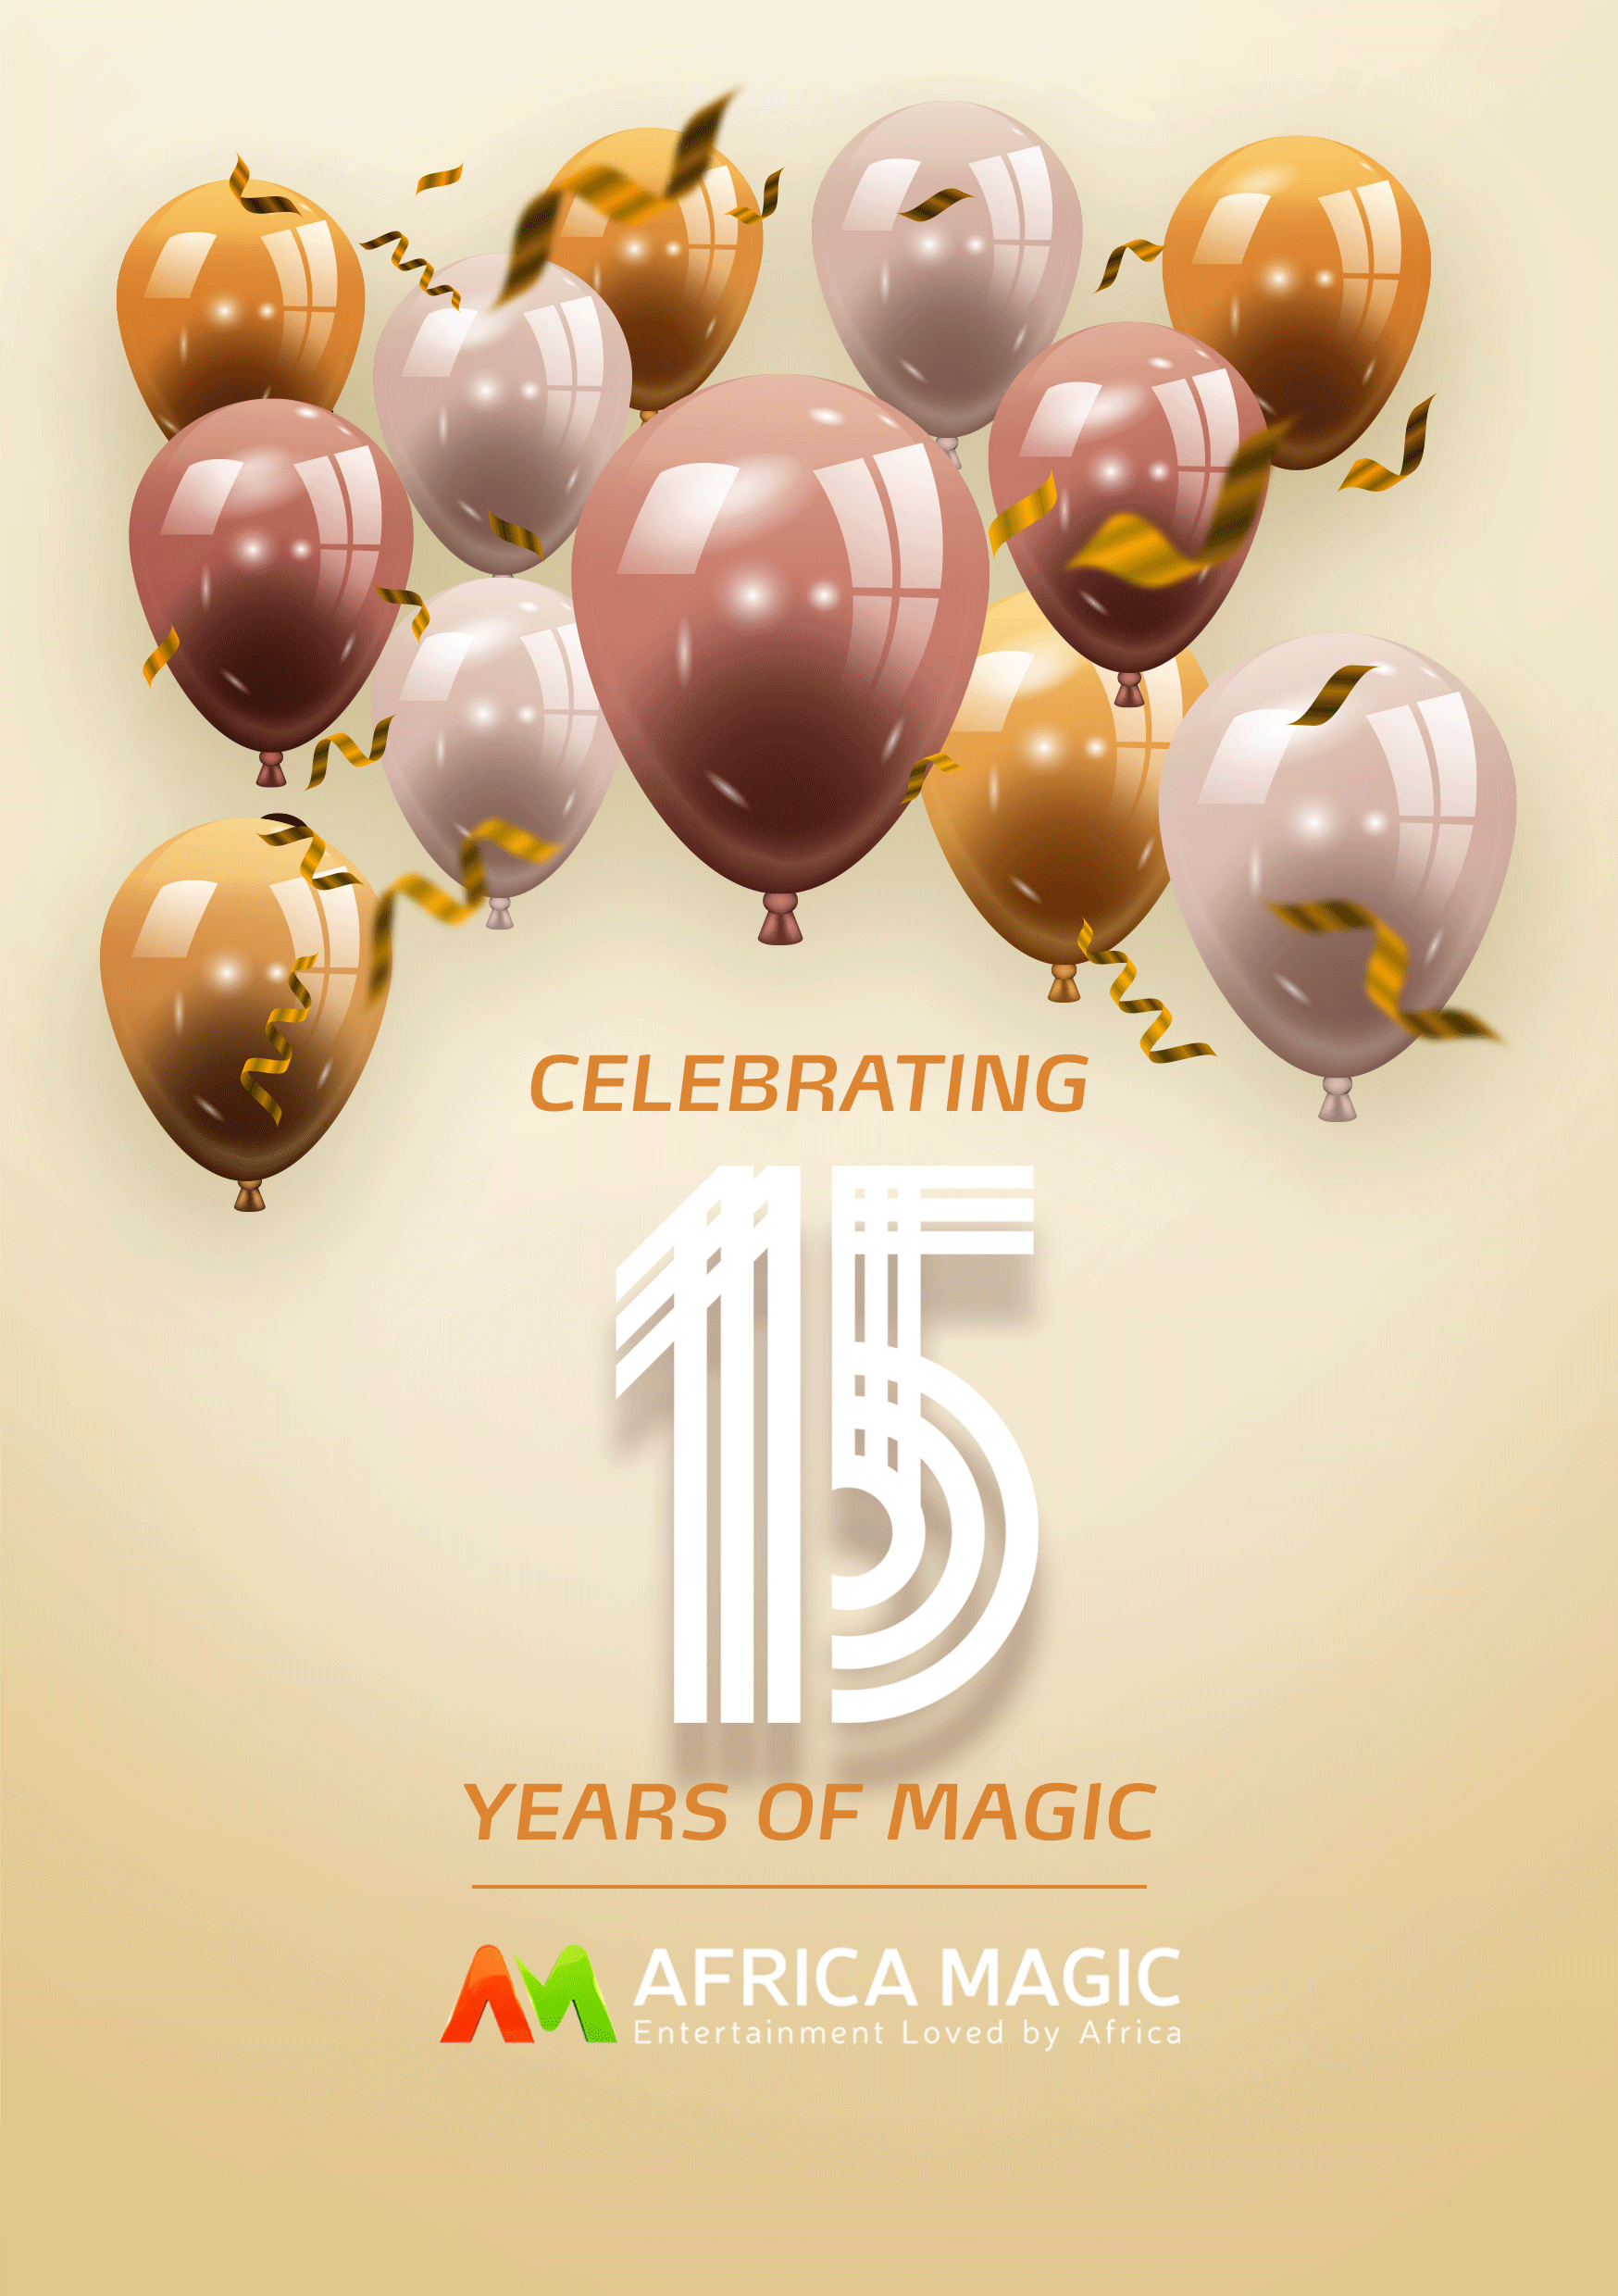 Africa Magic Is Celebrating 15 Years Of Quality African Entertainment